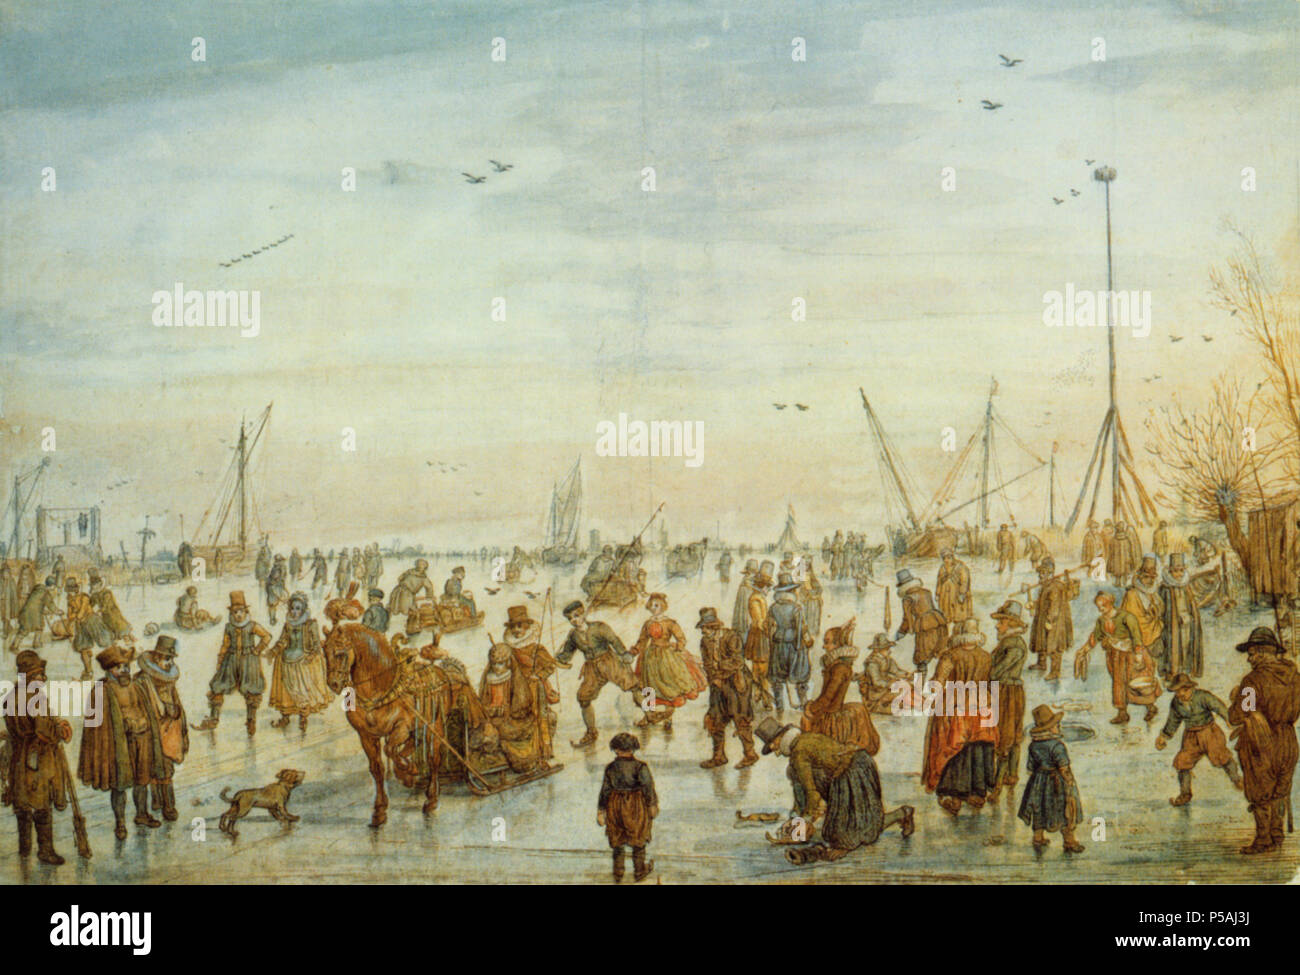 De Stomme Van Kampen Hendrick 1585 1634 Stock Photos Hendrick 1585 1634 Stock Images